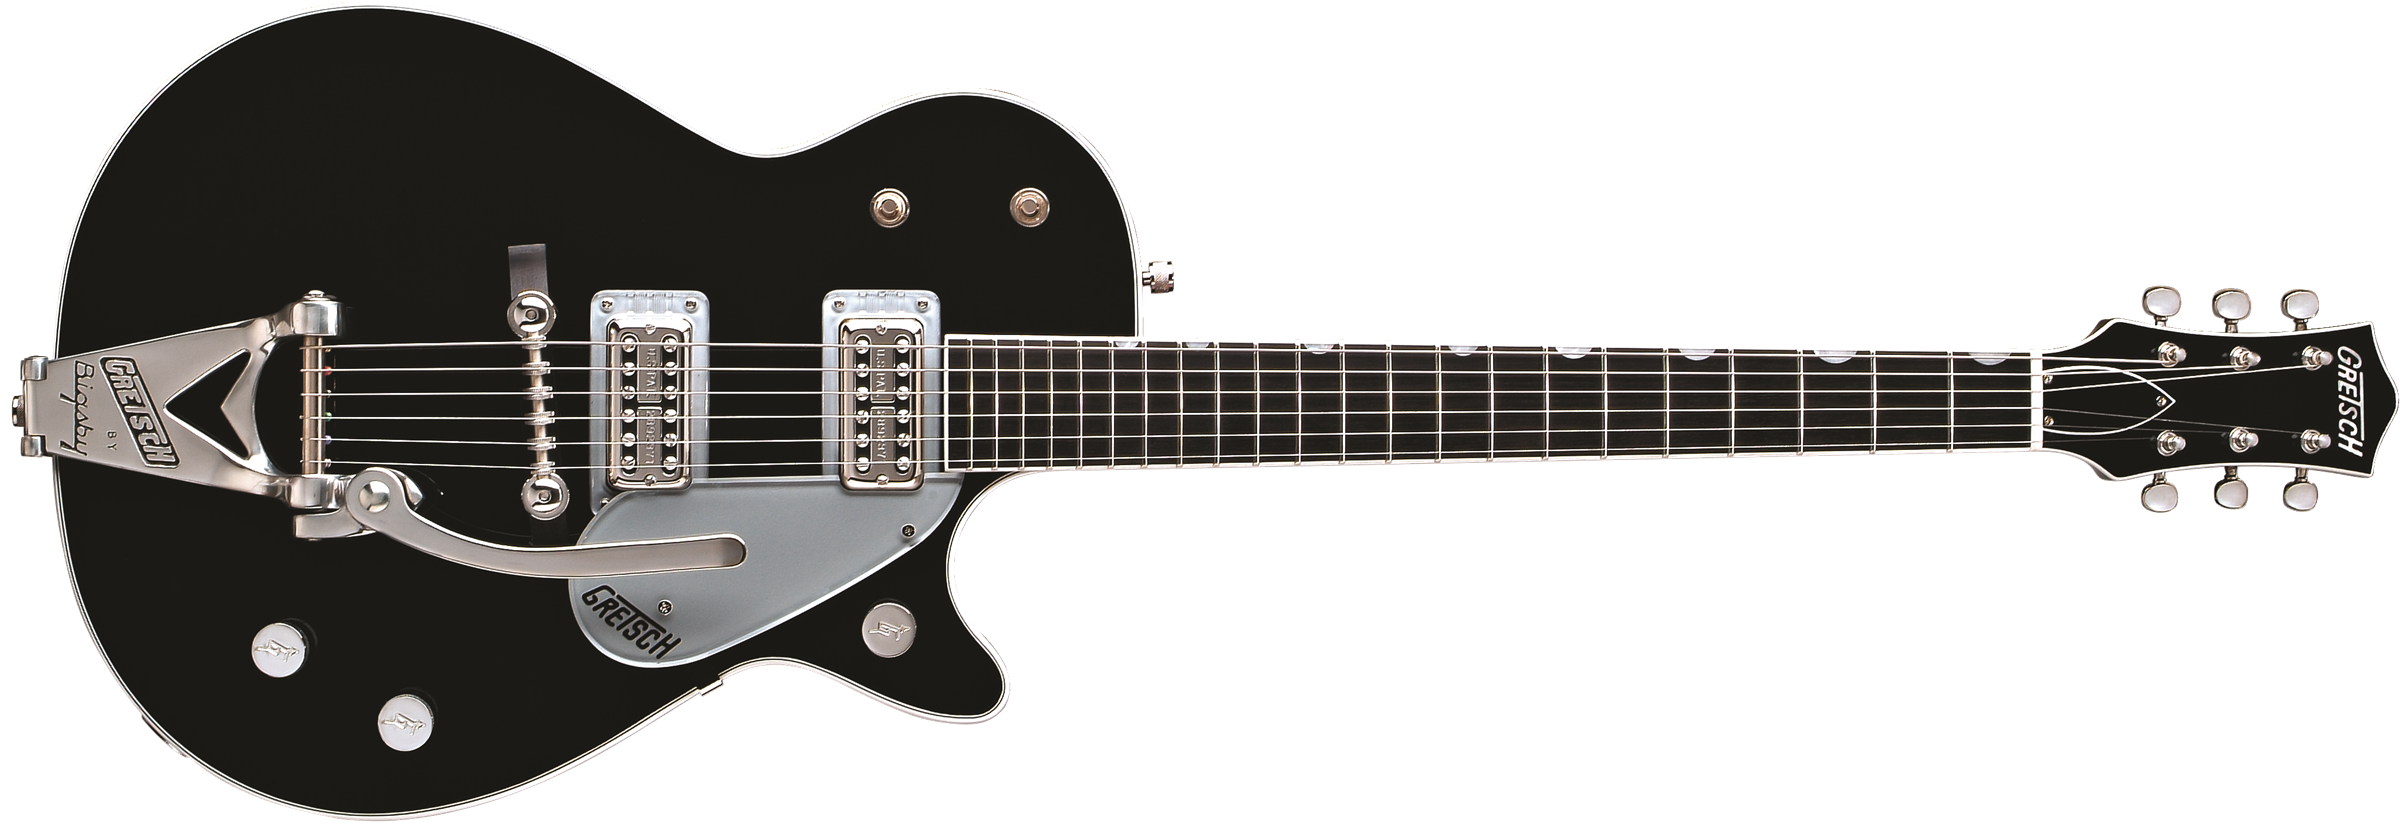 Gretsch Electro.png